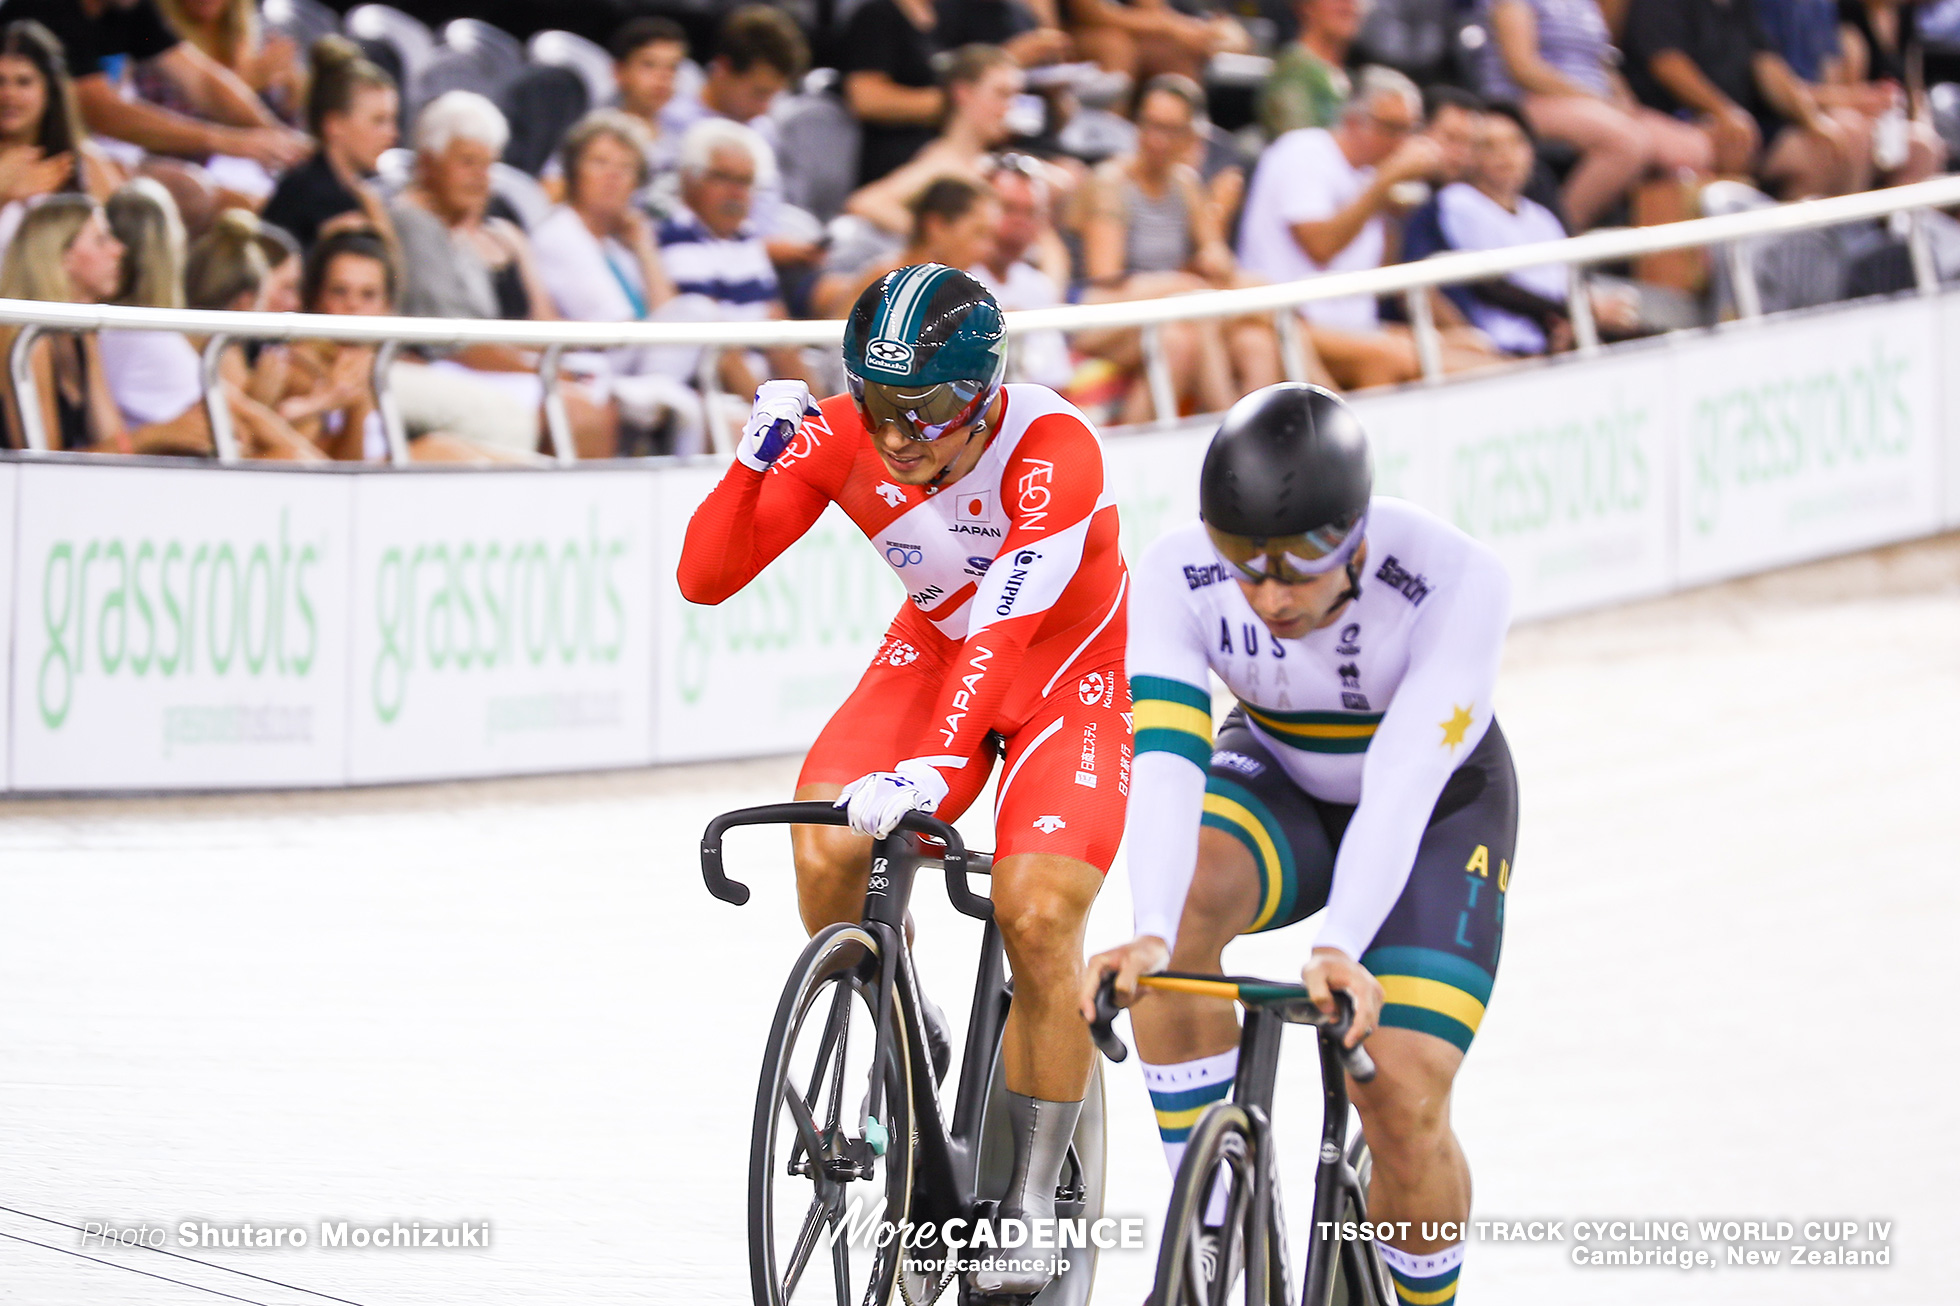 Final / Men's Sprint / TISSOT UCI TRACK CYCLING WORLD CUP IV, Cambridge, New Zealand, 新田祐大 Nathan Hart ネイサン・ハート